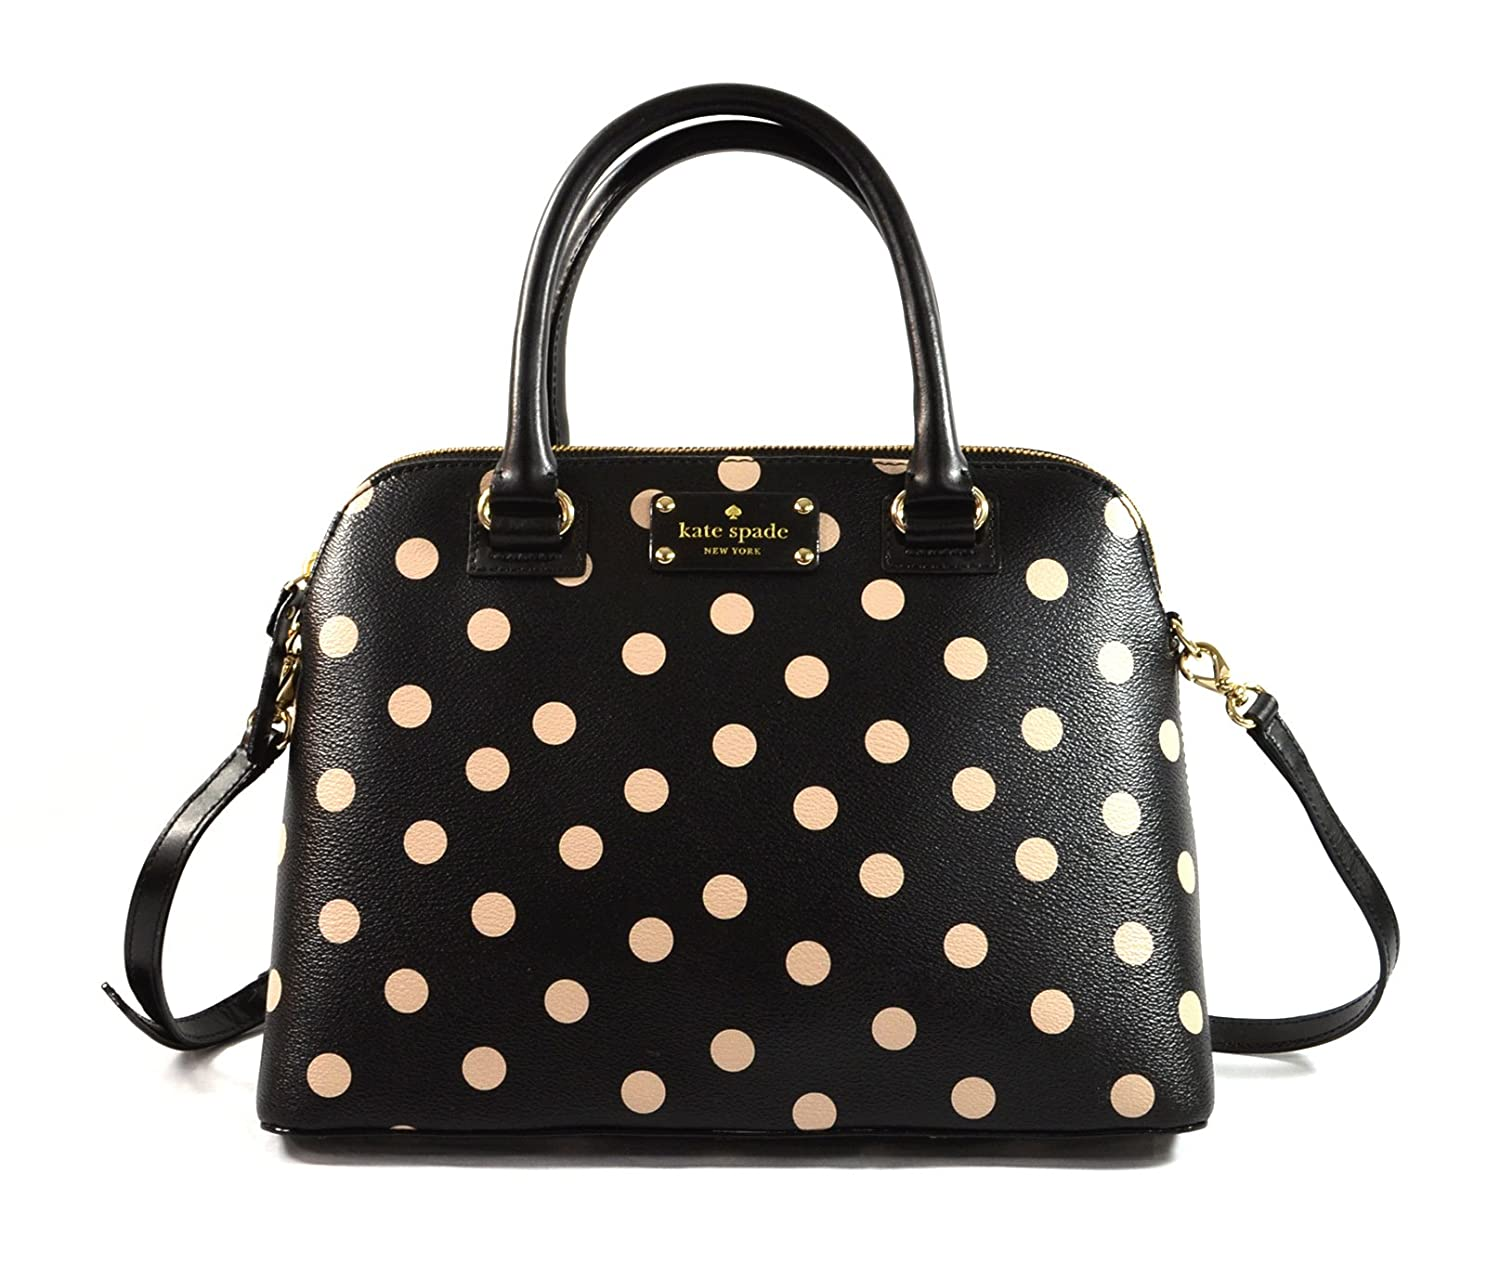 Amazon kate spade new york wellesley printed small rachelle amazon kate spade new york wellesley printed small rachelle satchel handbag purse blackdecobeige shoes junglespirit